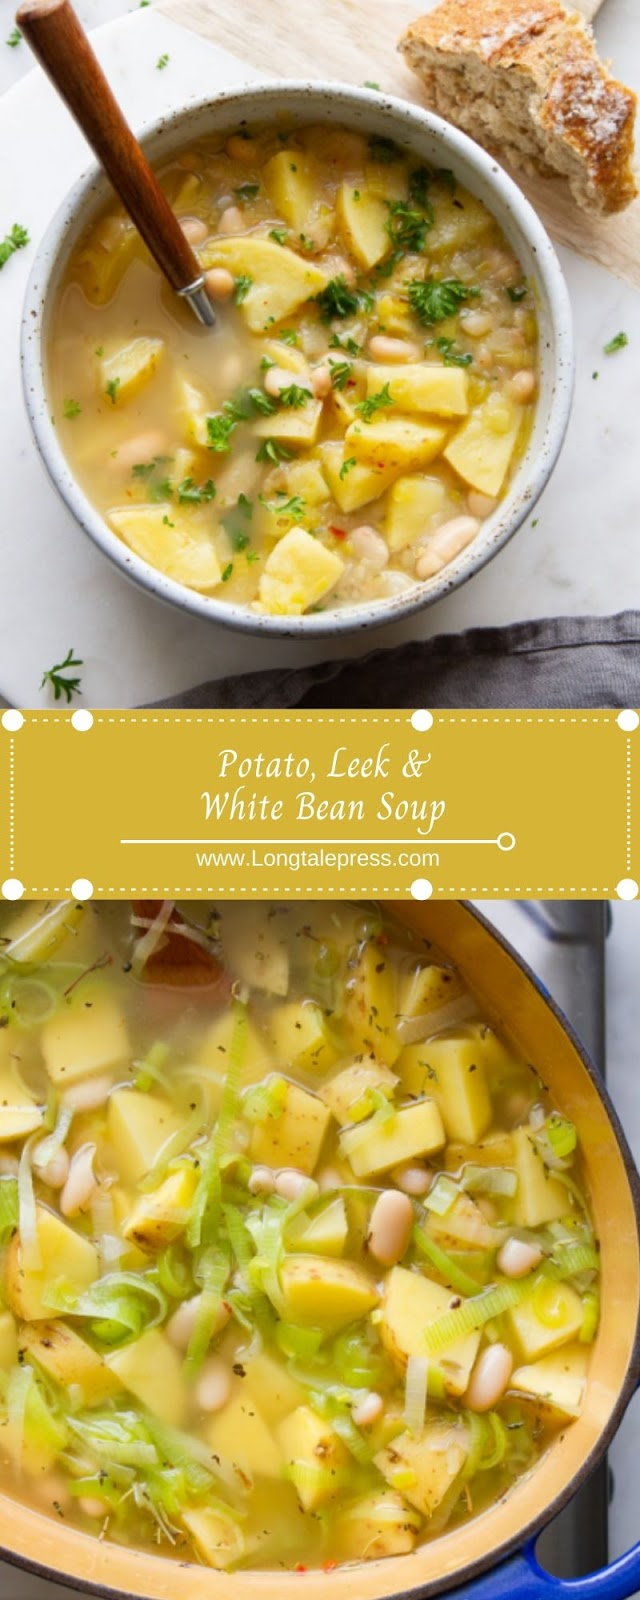 Potato, Leek & White Bean Soup